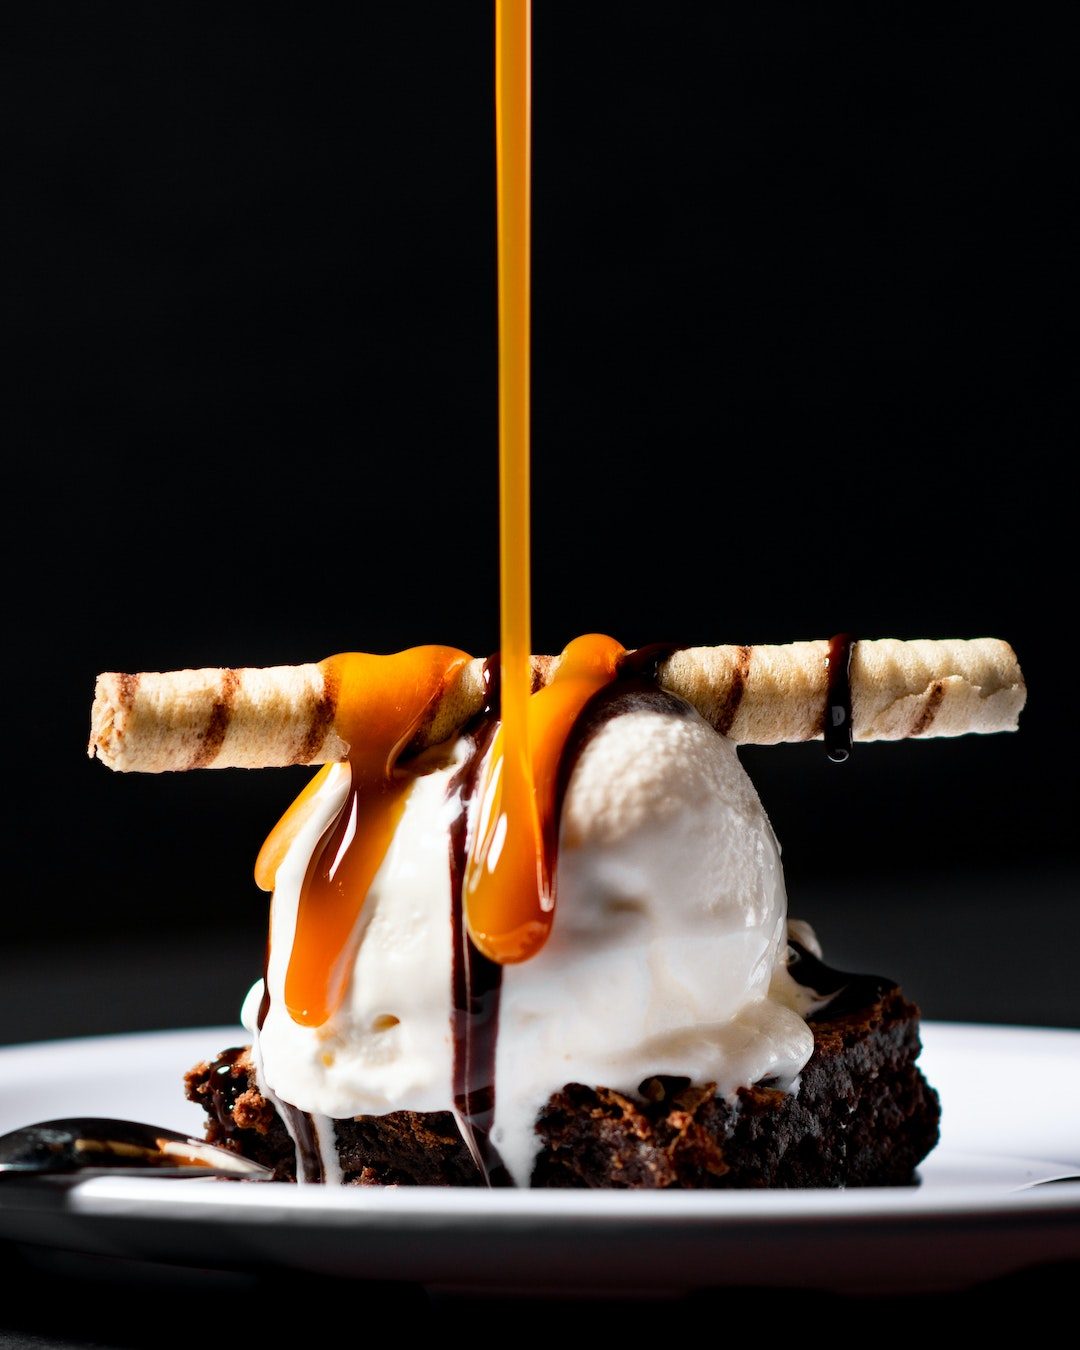 Image of one father's day desserts option: homemade caramel recipe.